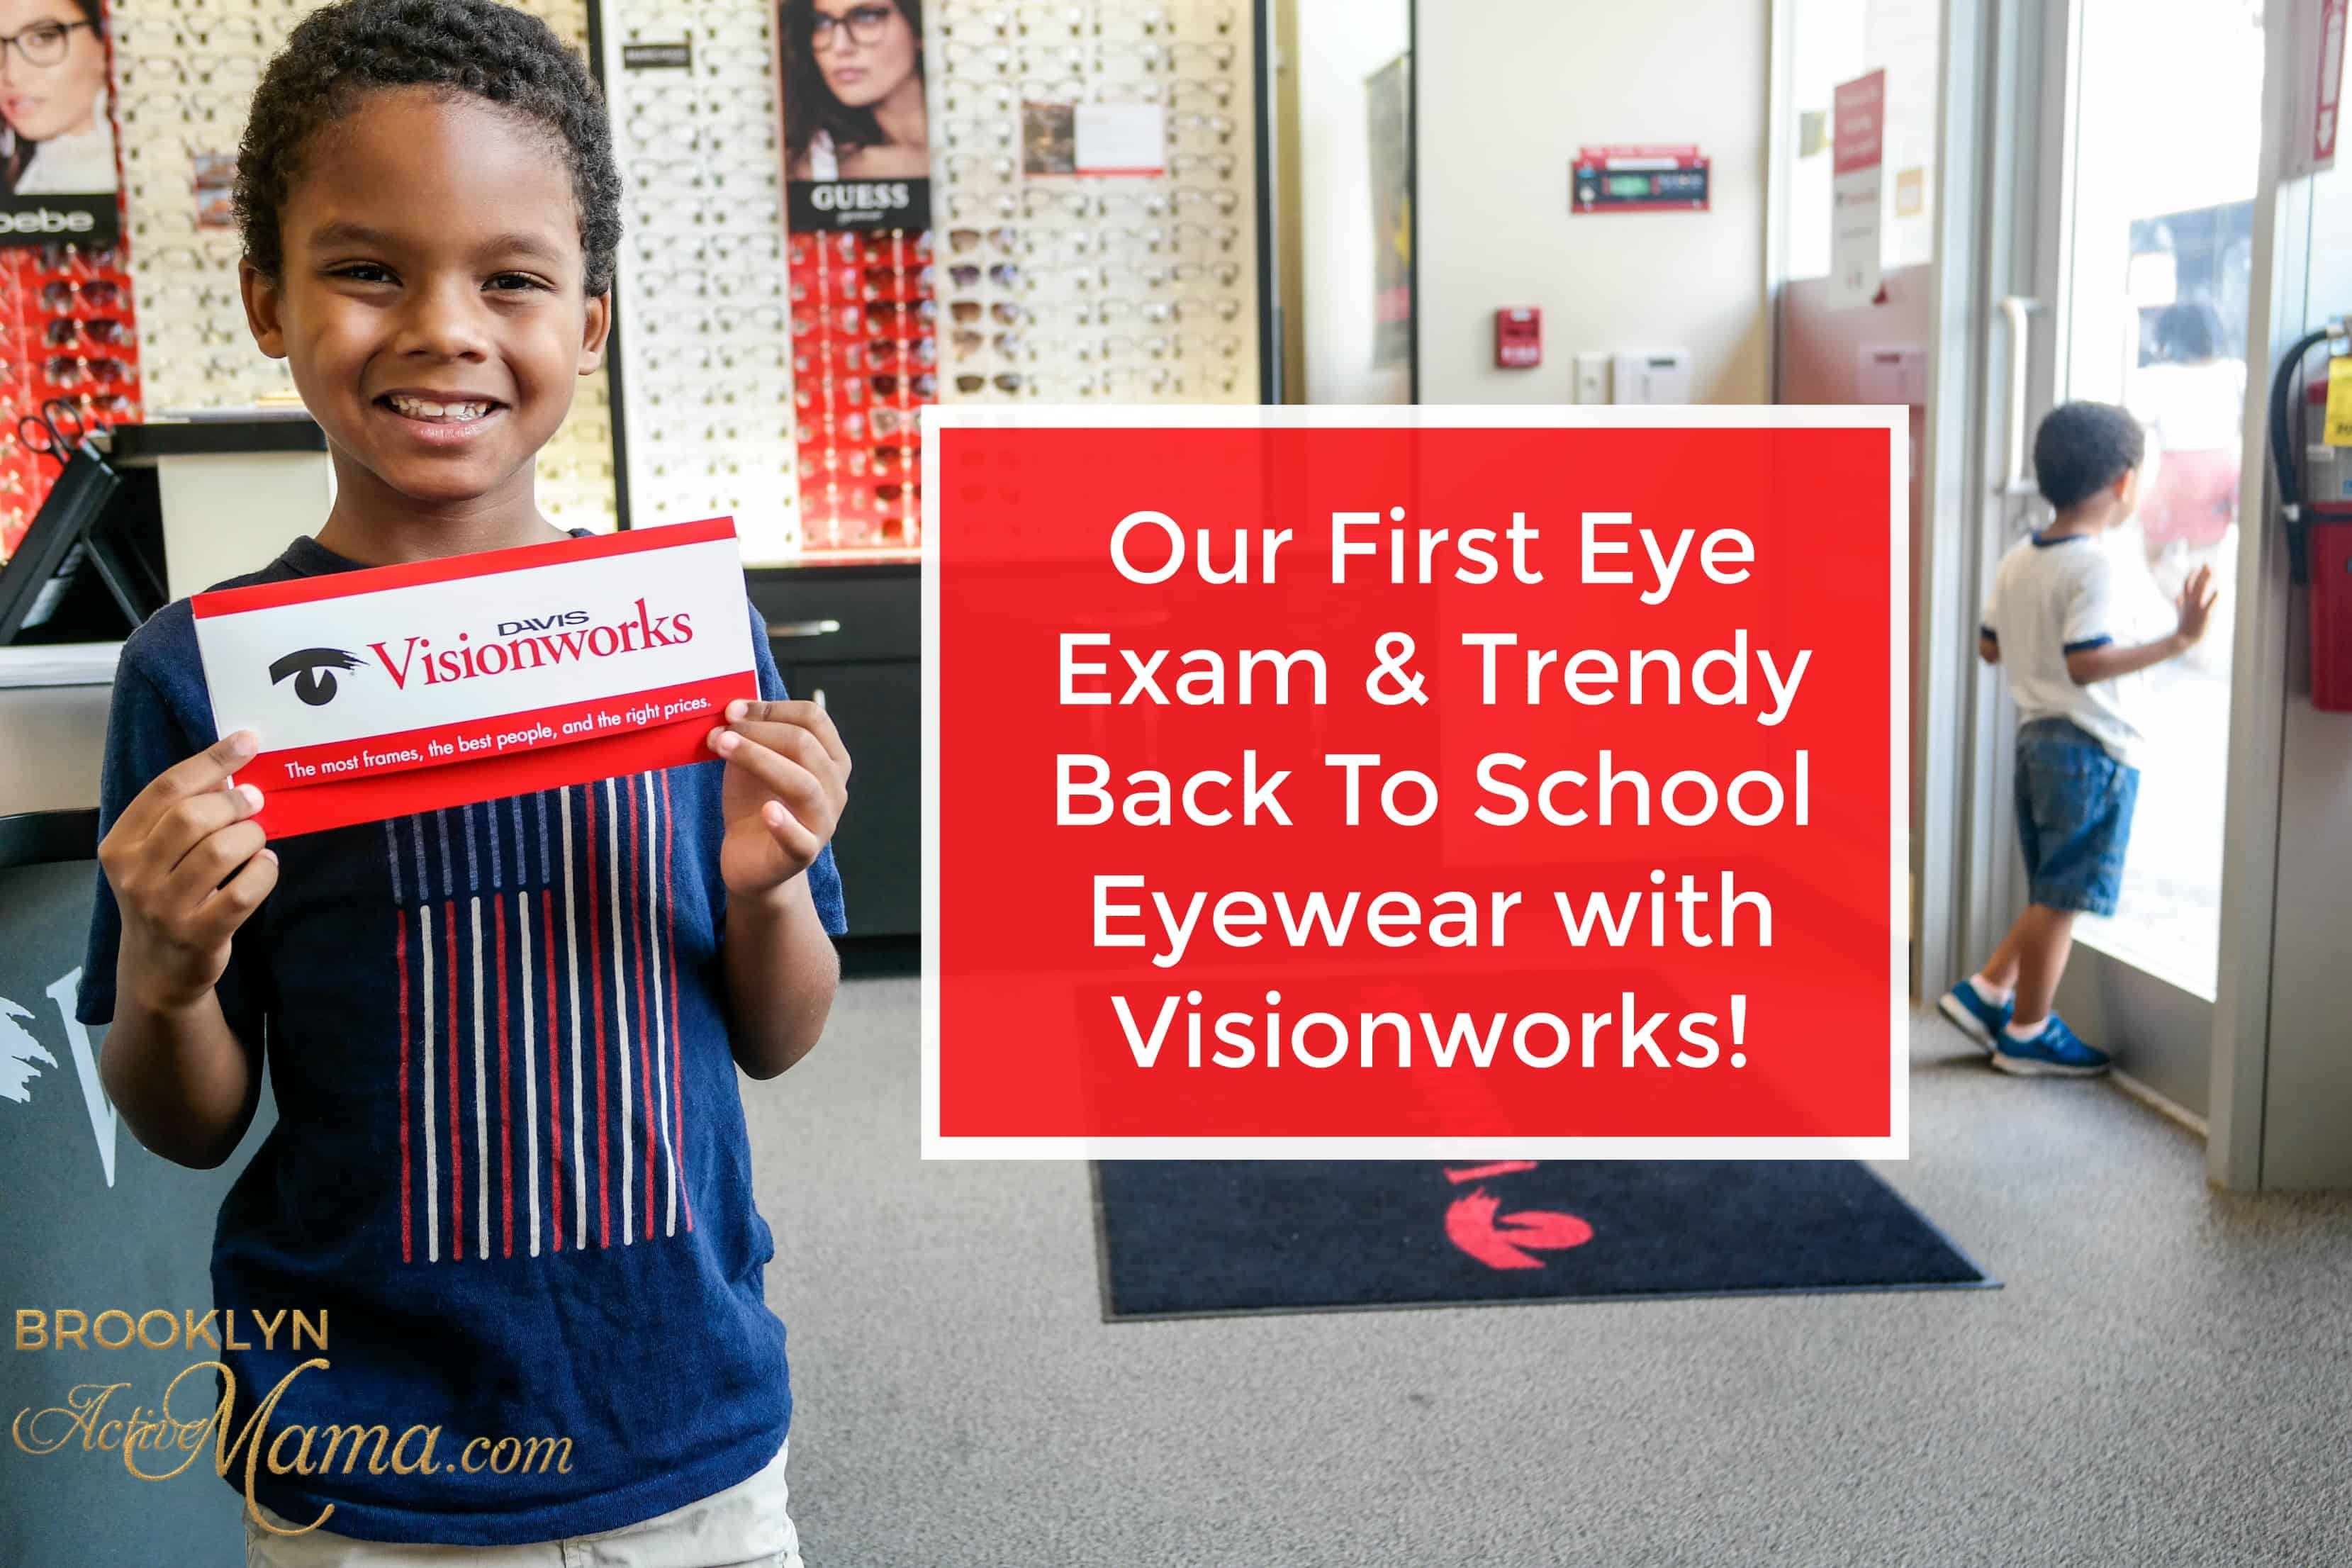 trendy back to schoo eyewear with visionworks